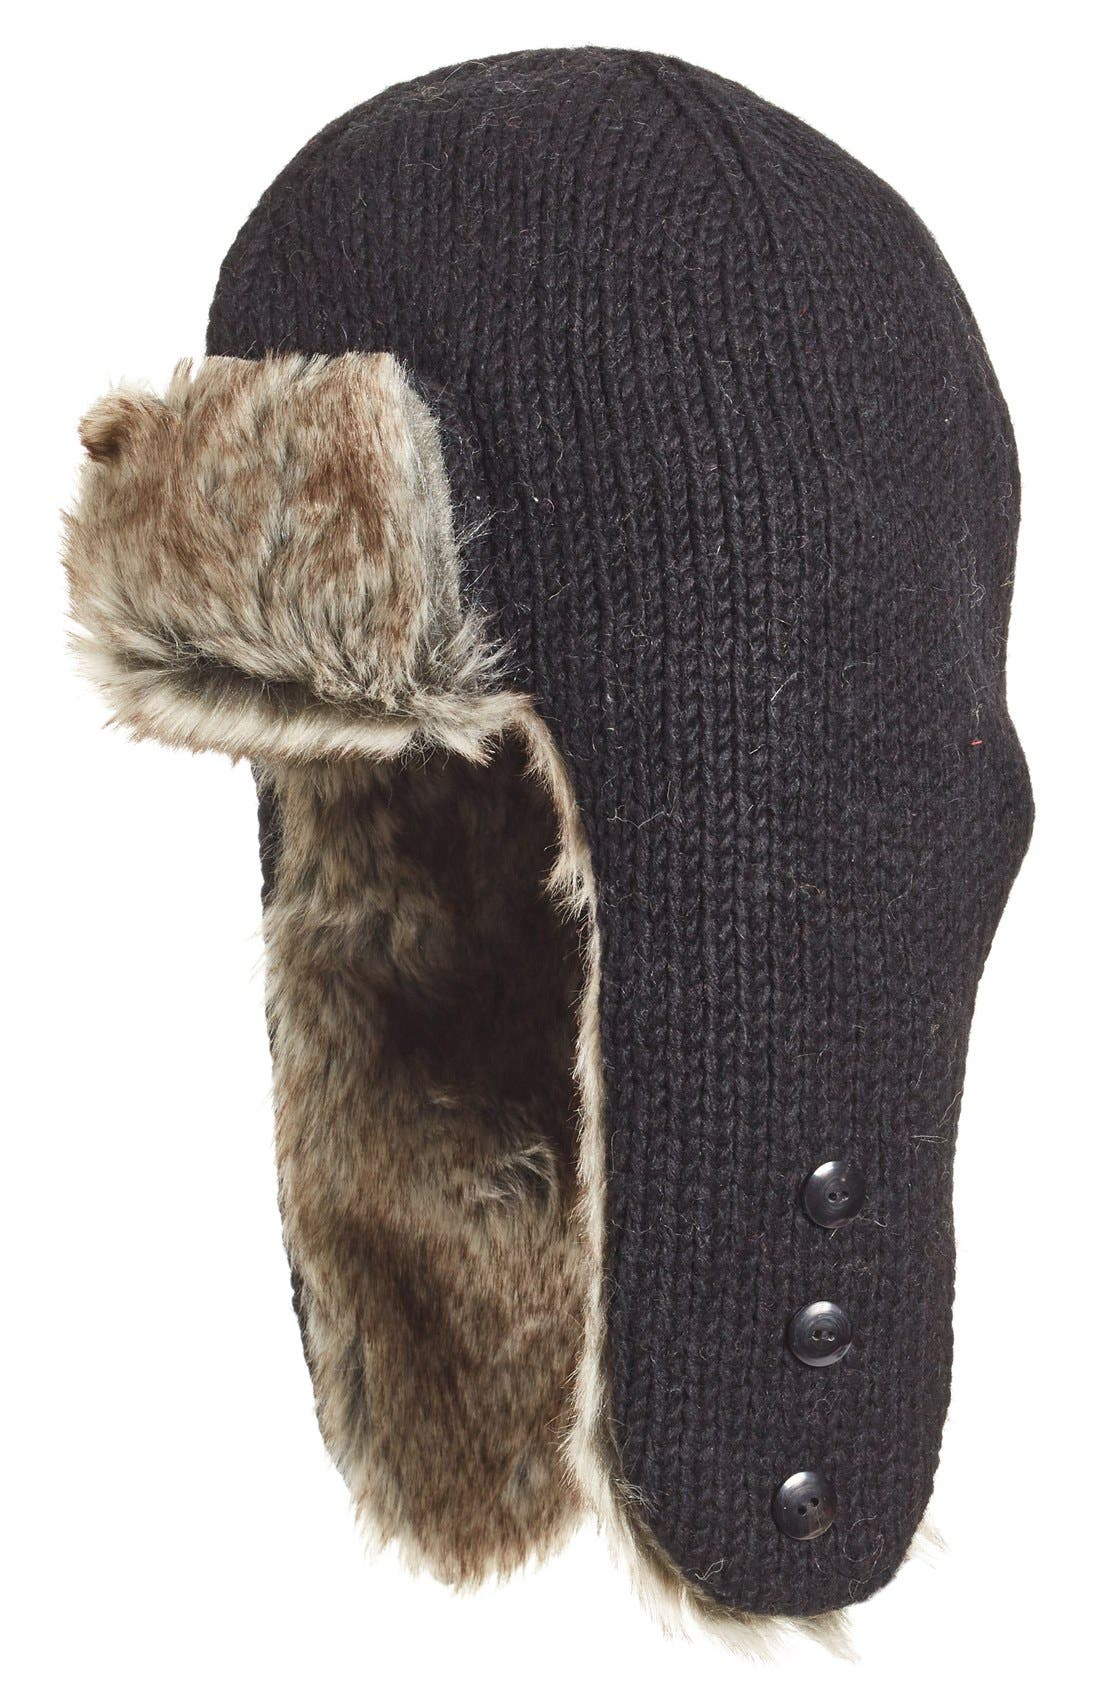 Nirvanna Designs Earflap Hat with Faux Fur Trim